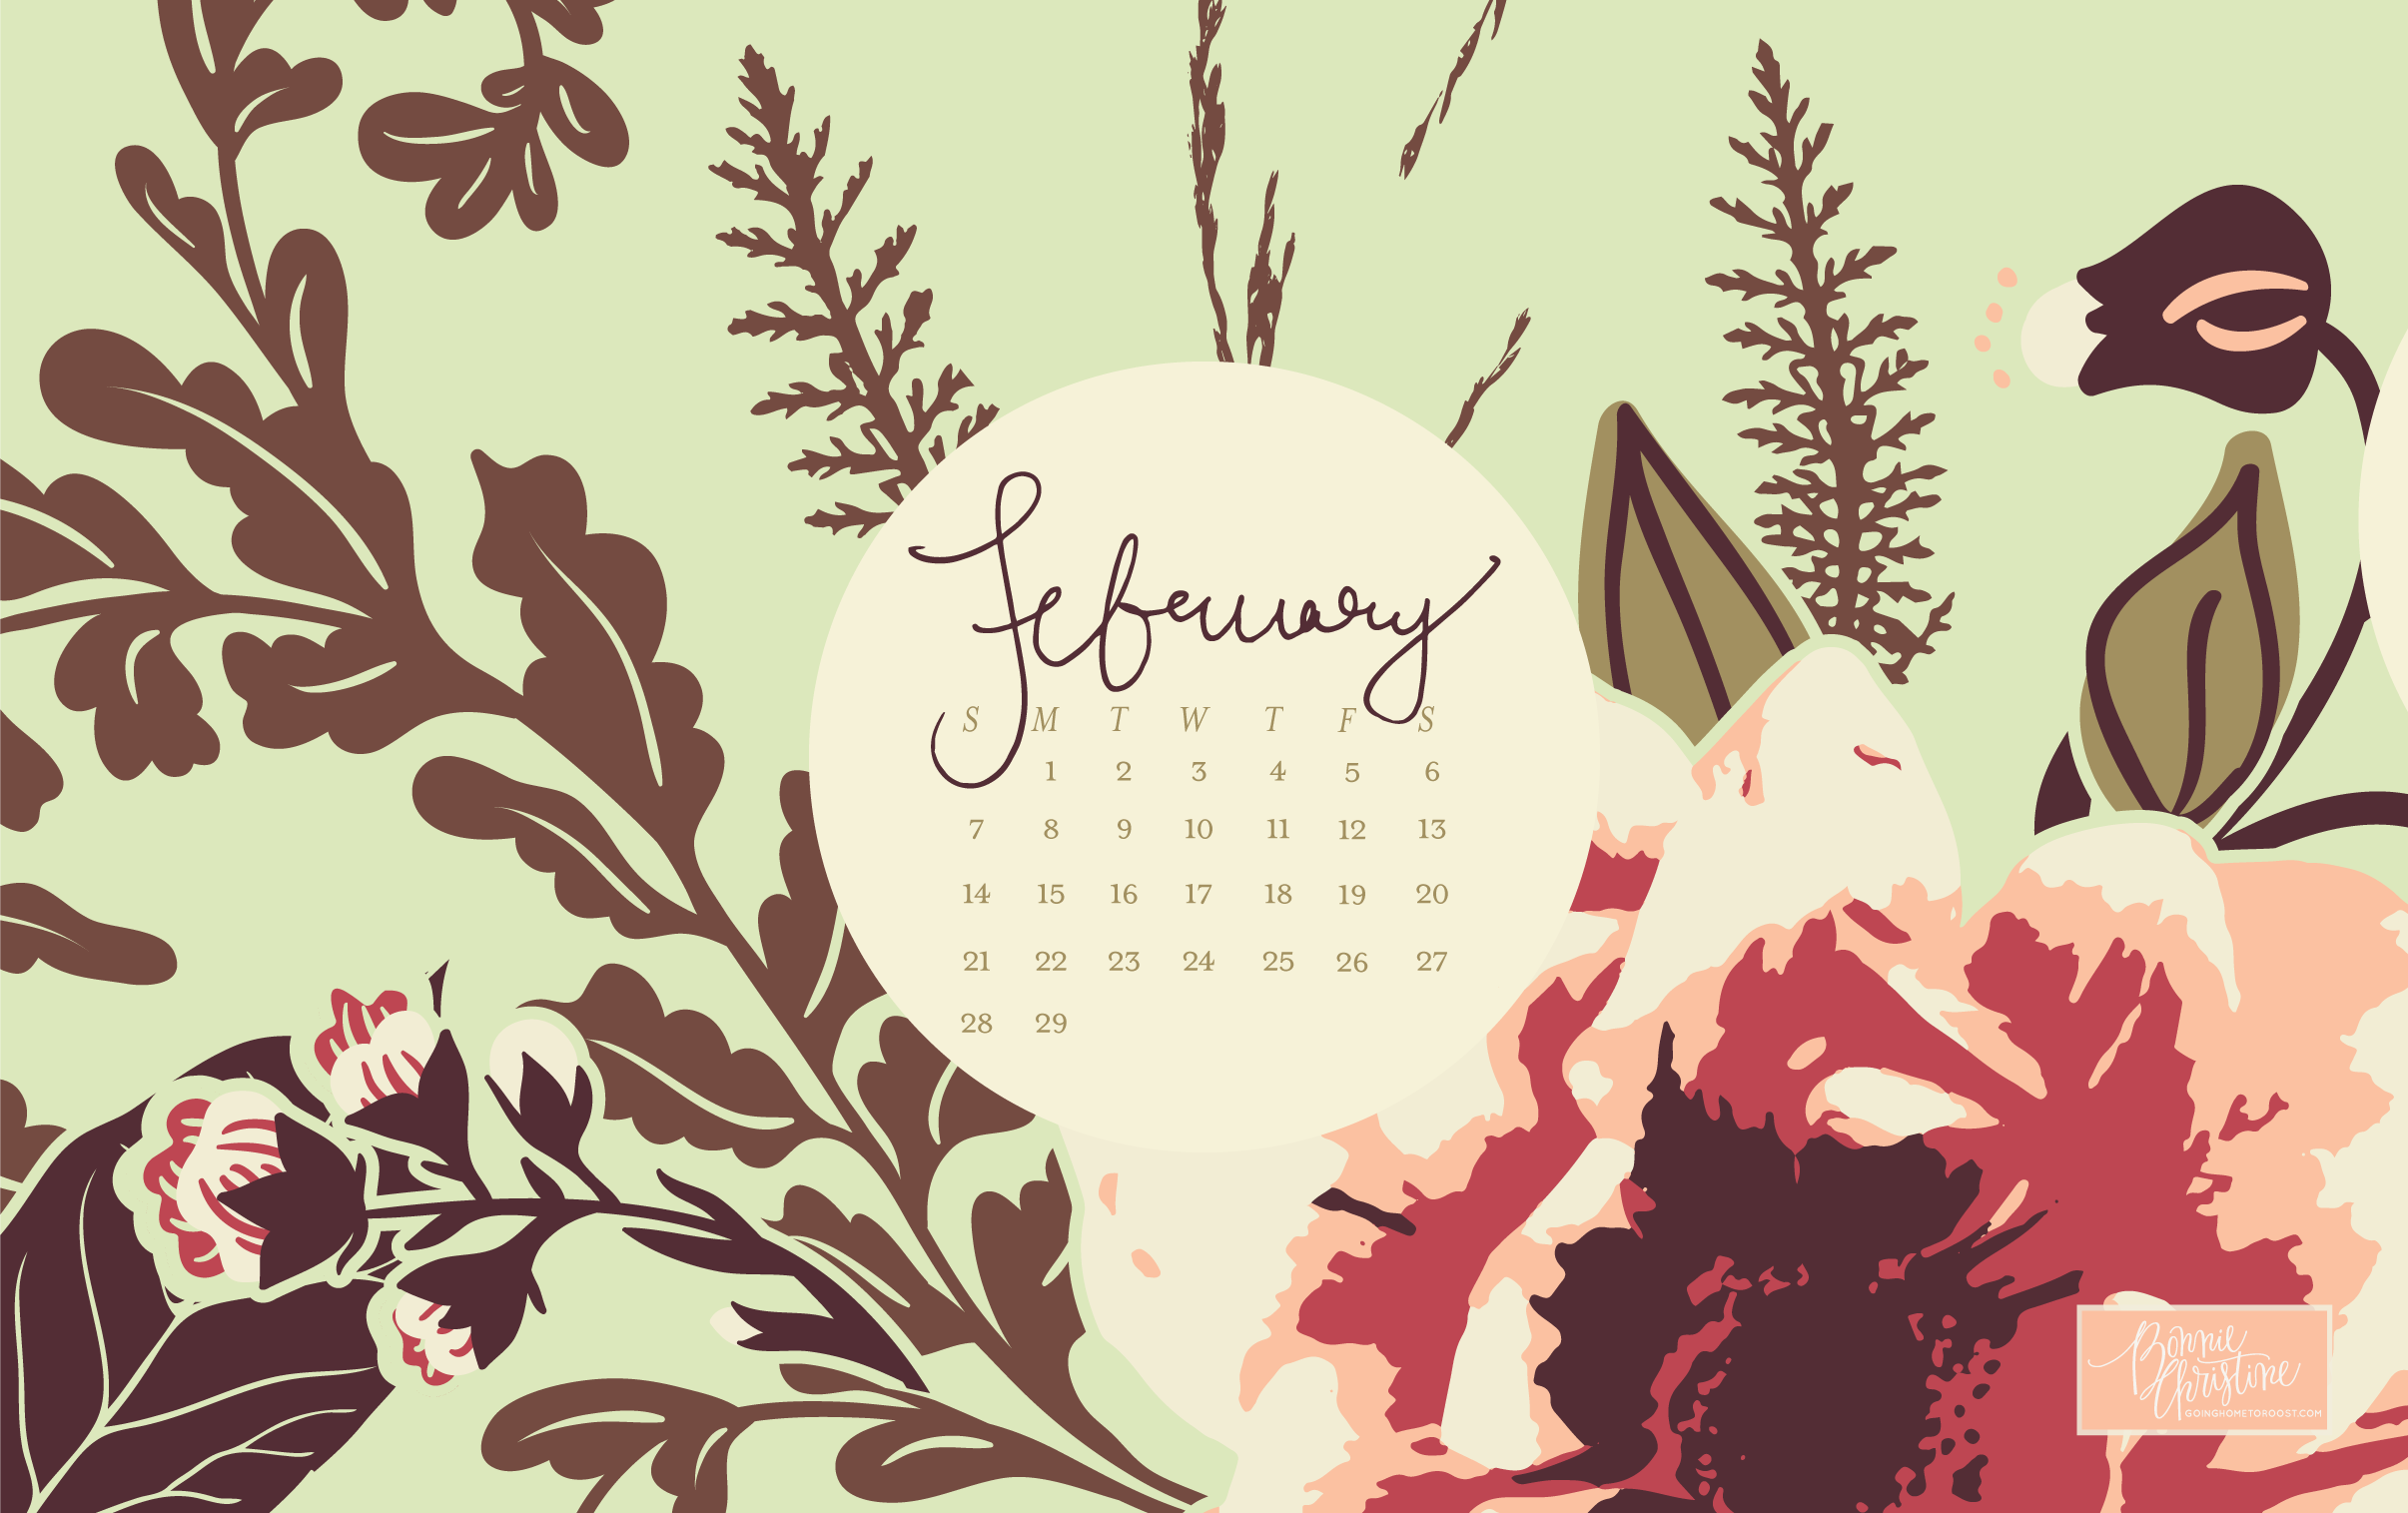 February's Desktop + Smartphone Backgrounds (3)